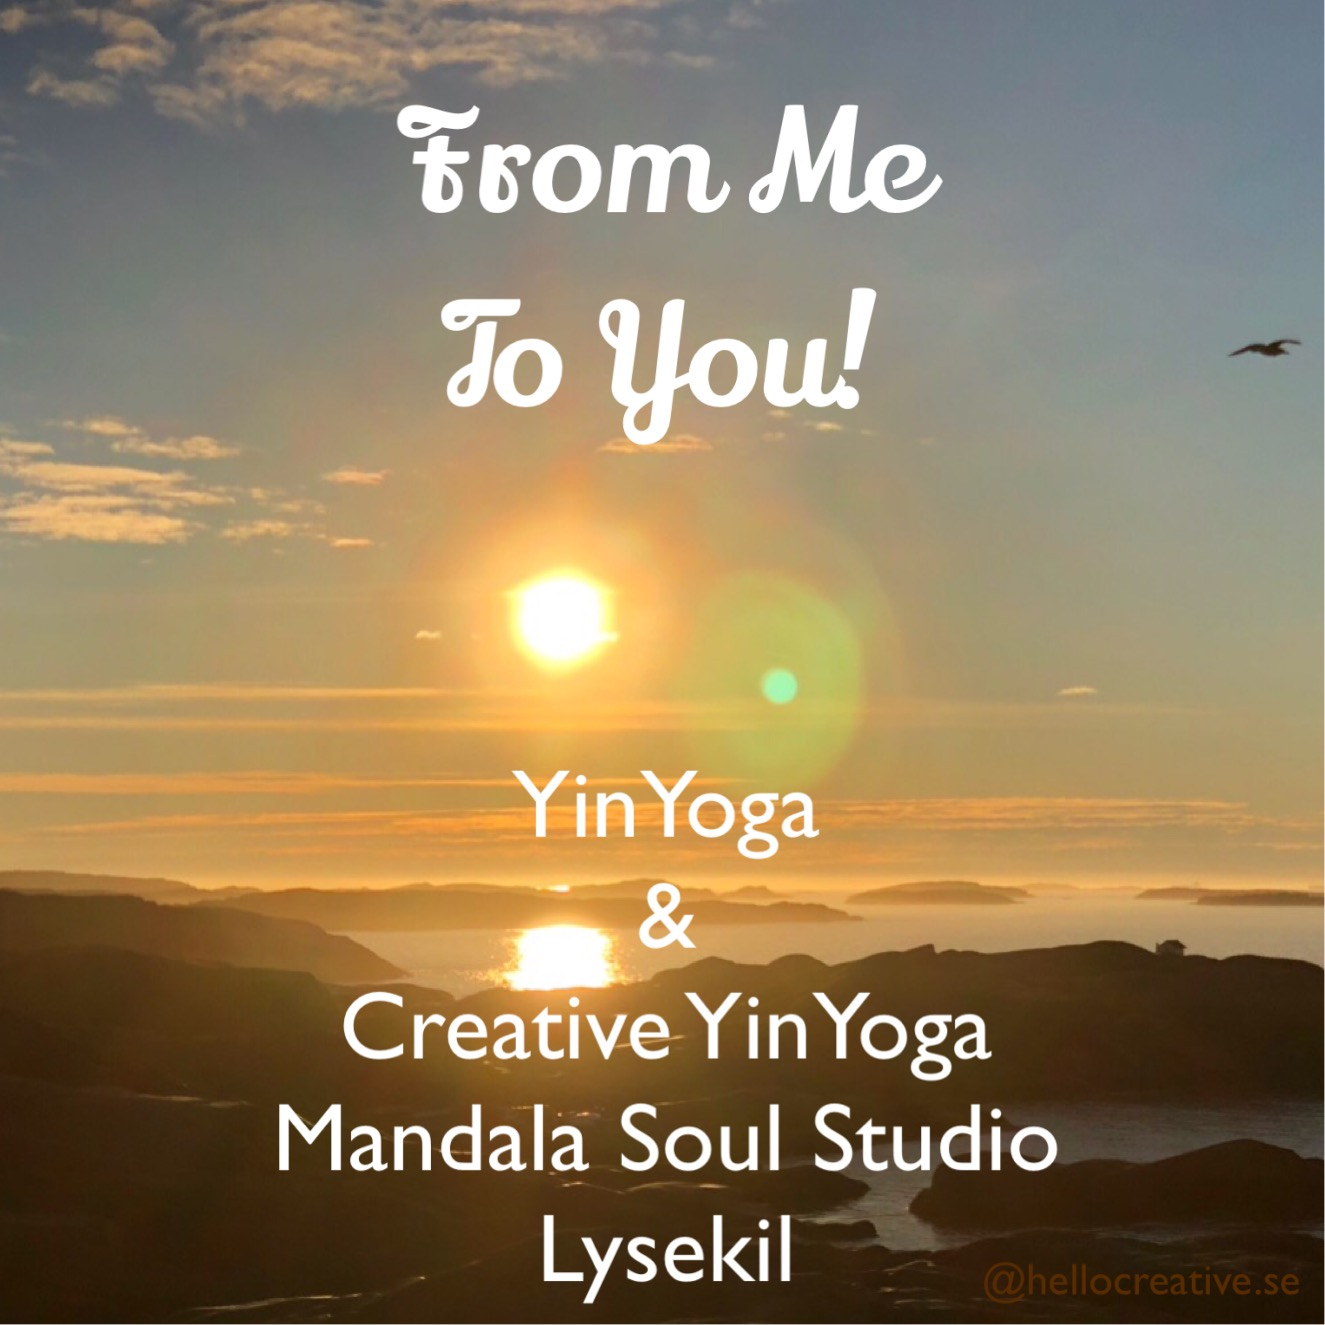 From_Me_To_You_Creative_YinYoga_Lysekil_JPG.JPG